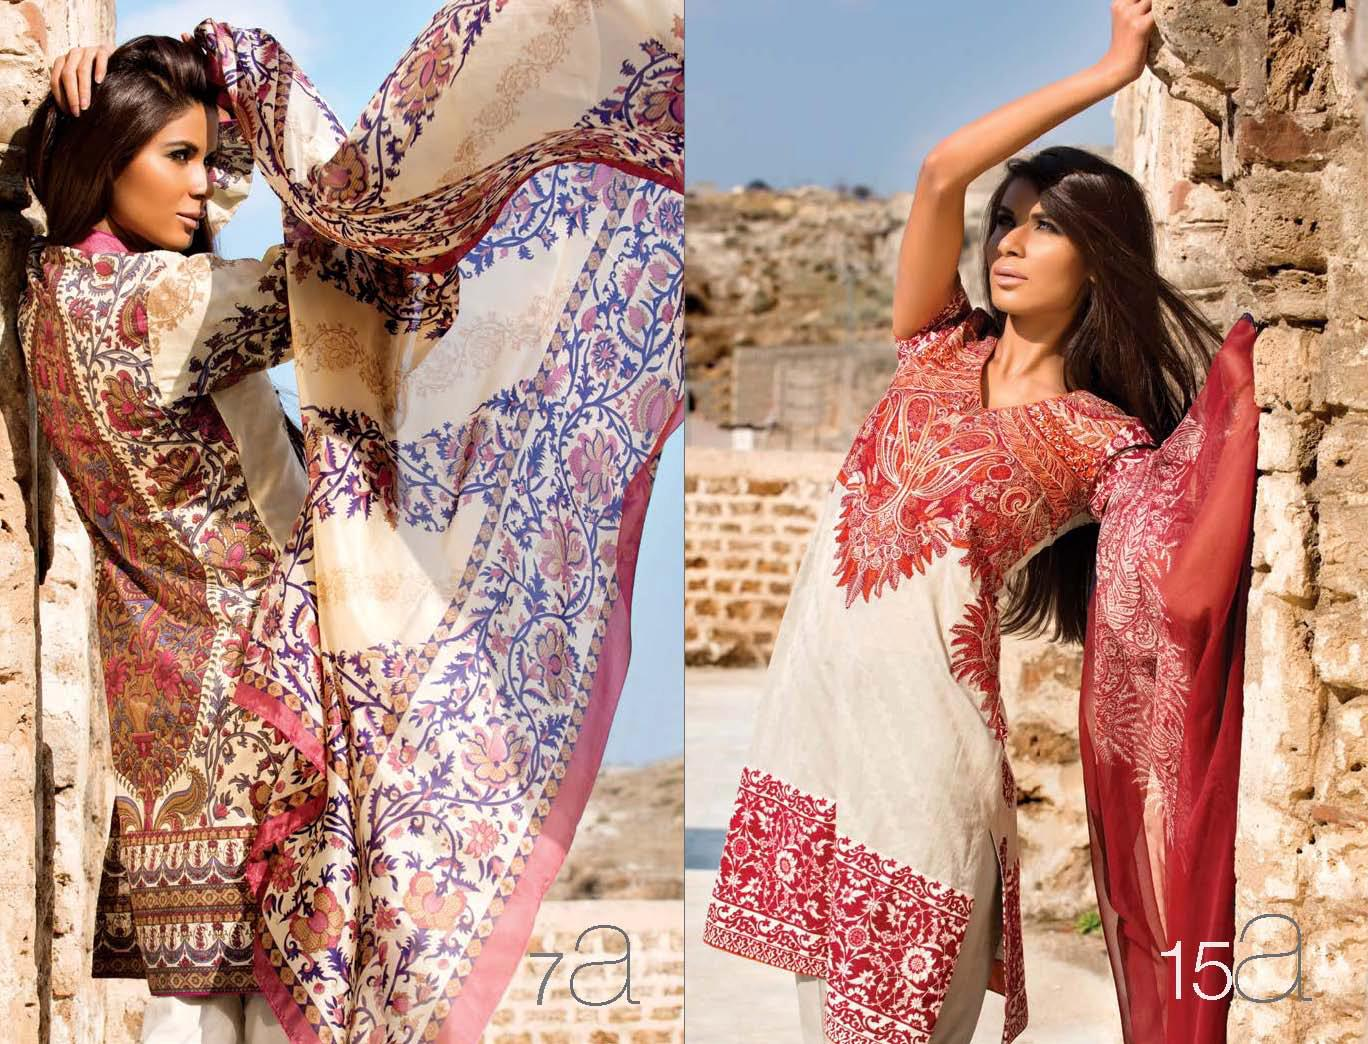 SanaSafinazLawnCollection2013 2014wwwShe9blogspotcom252812529 - Sana Safinaz Lawn Collection 2013